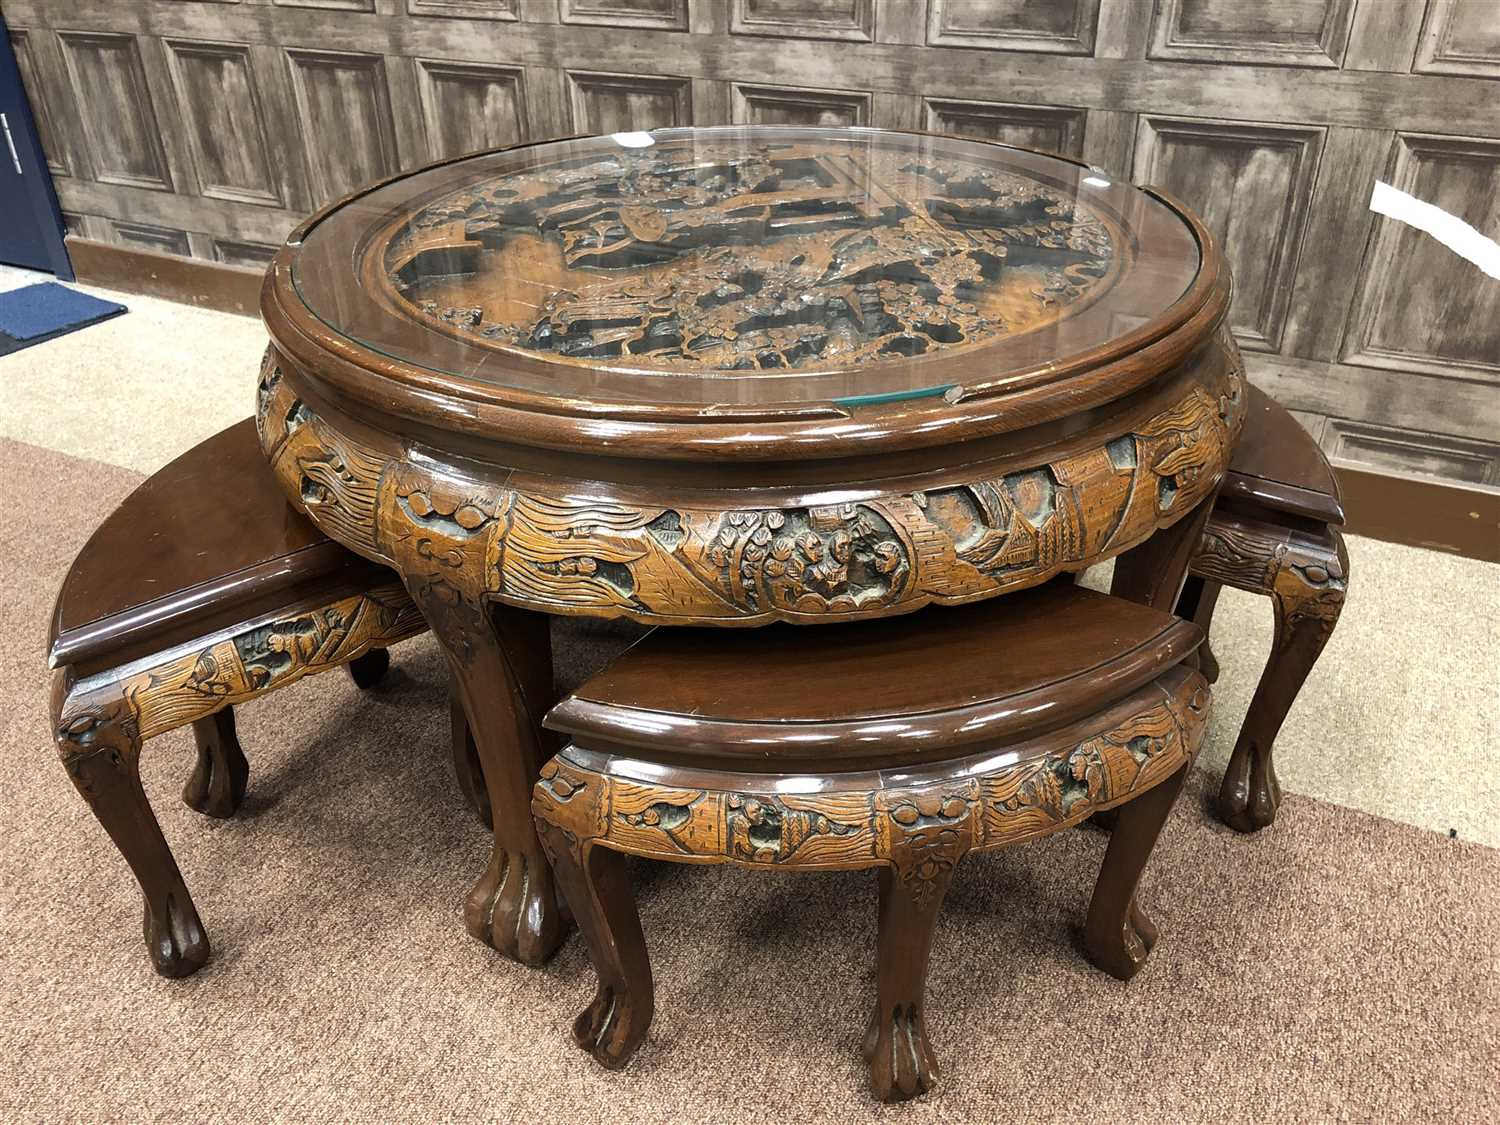 Lot 1029-A EARLY 20TH CENTURY CHINESE NEST OF TABLES